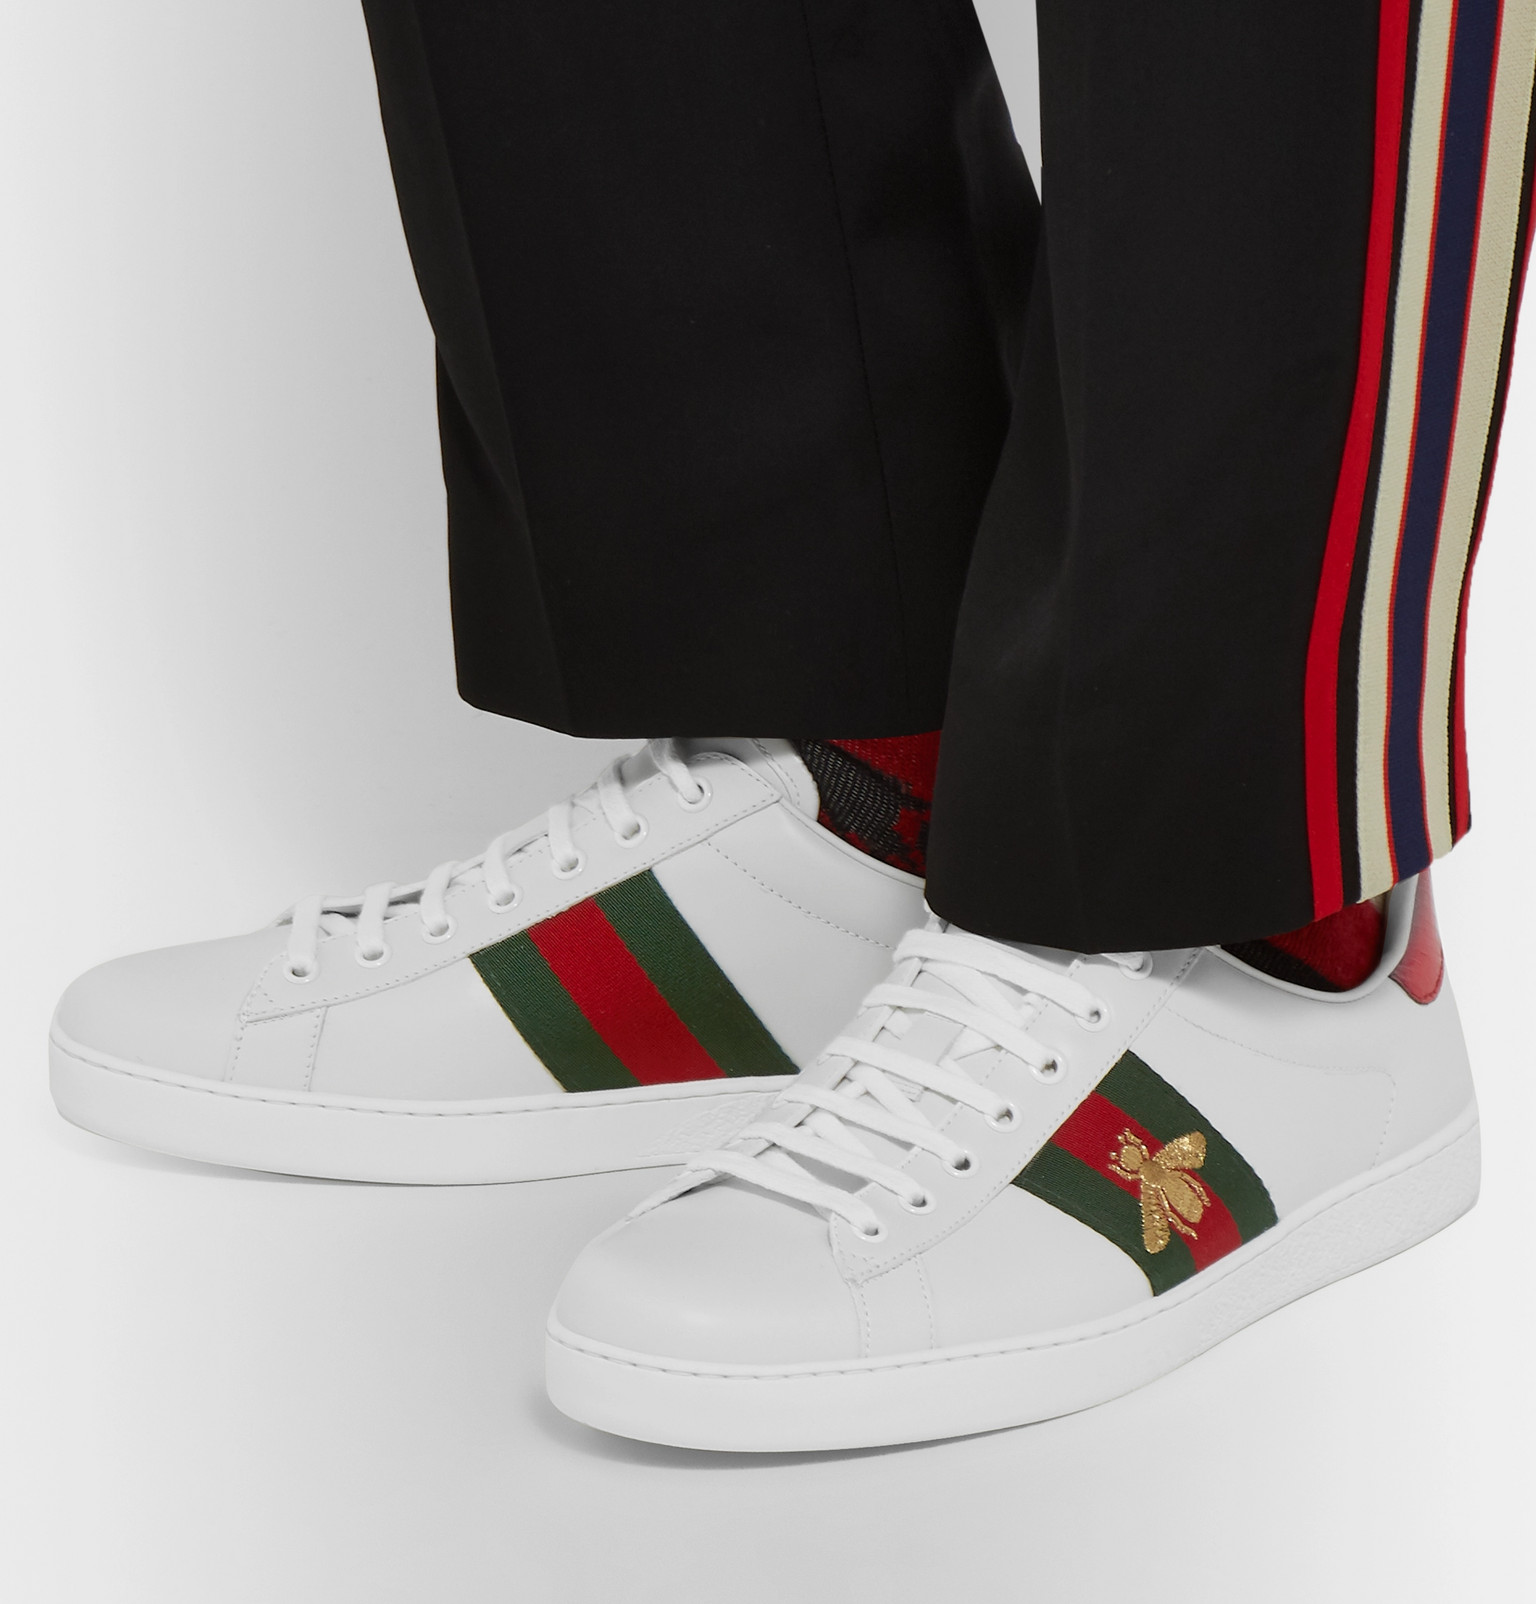 42ddcbbb5e7 Gucci - Ace Watersnake-Trimmed Embroidered Leather Sneakers